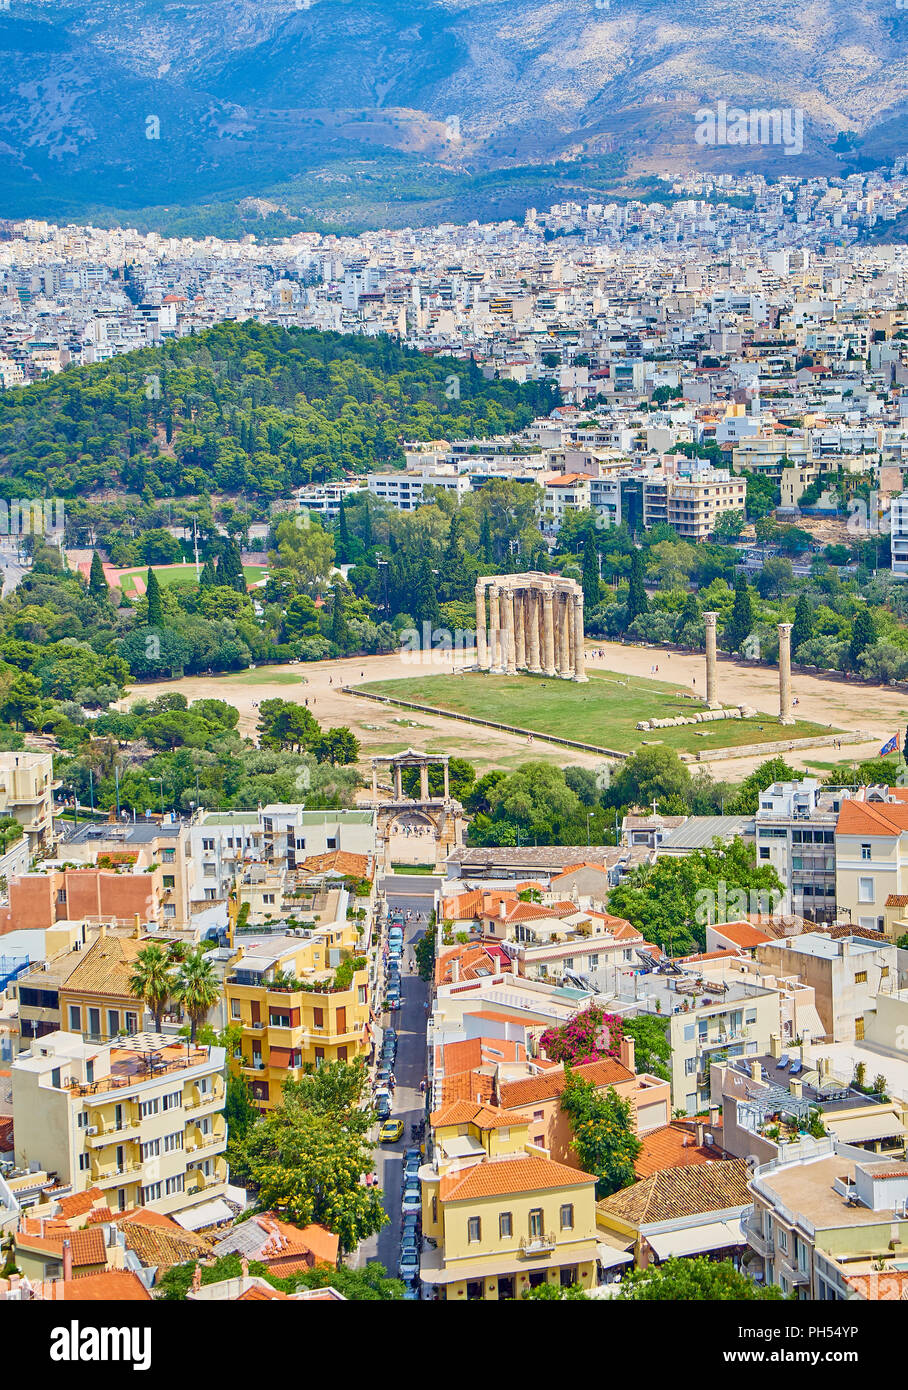 Temple of Olympian Zeus, monumental sanctuary dedicated to Zeus, with Lisikratous avenue and Hadrian's arch in foreground. View from the Acropolis of  - Stock Image